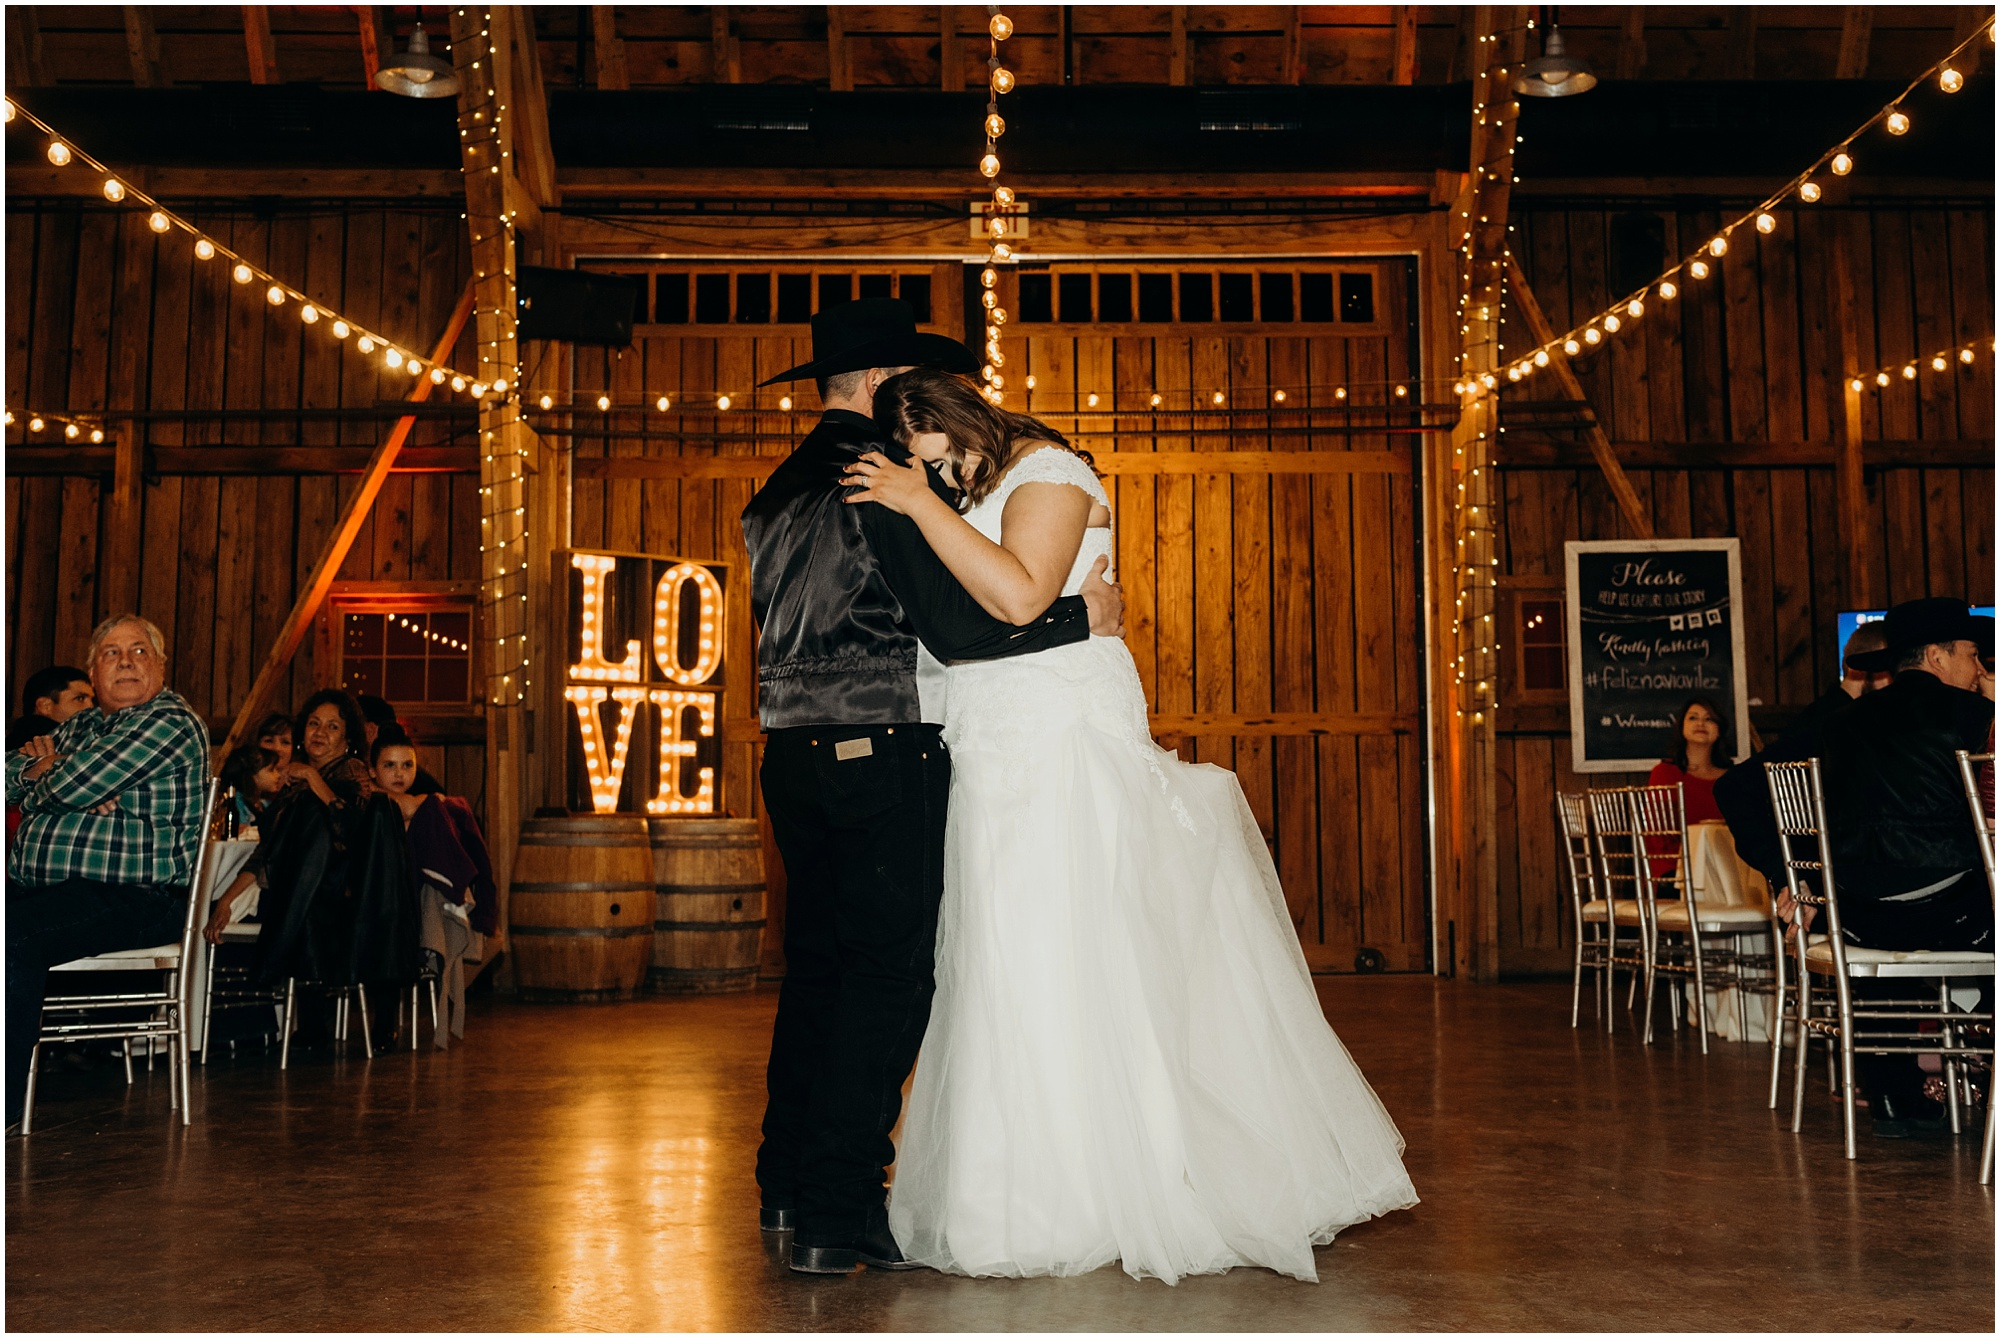 Intimate first dance photo from the couples Country Christmas Wedding Reception in a barn.